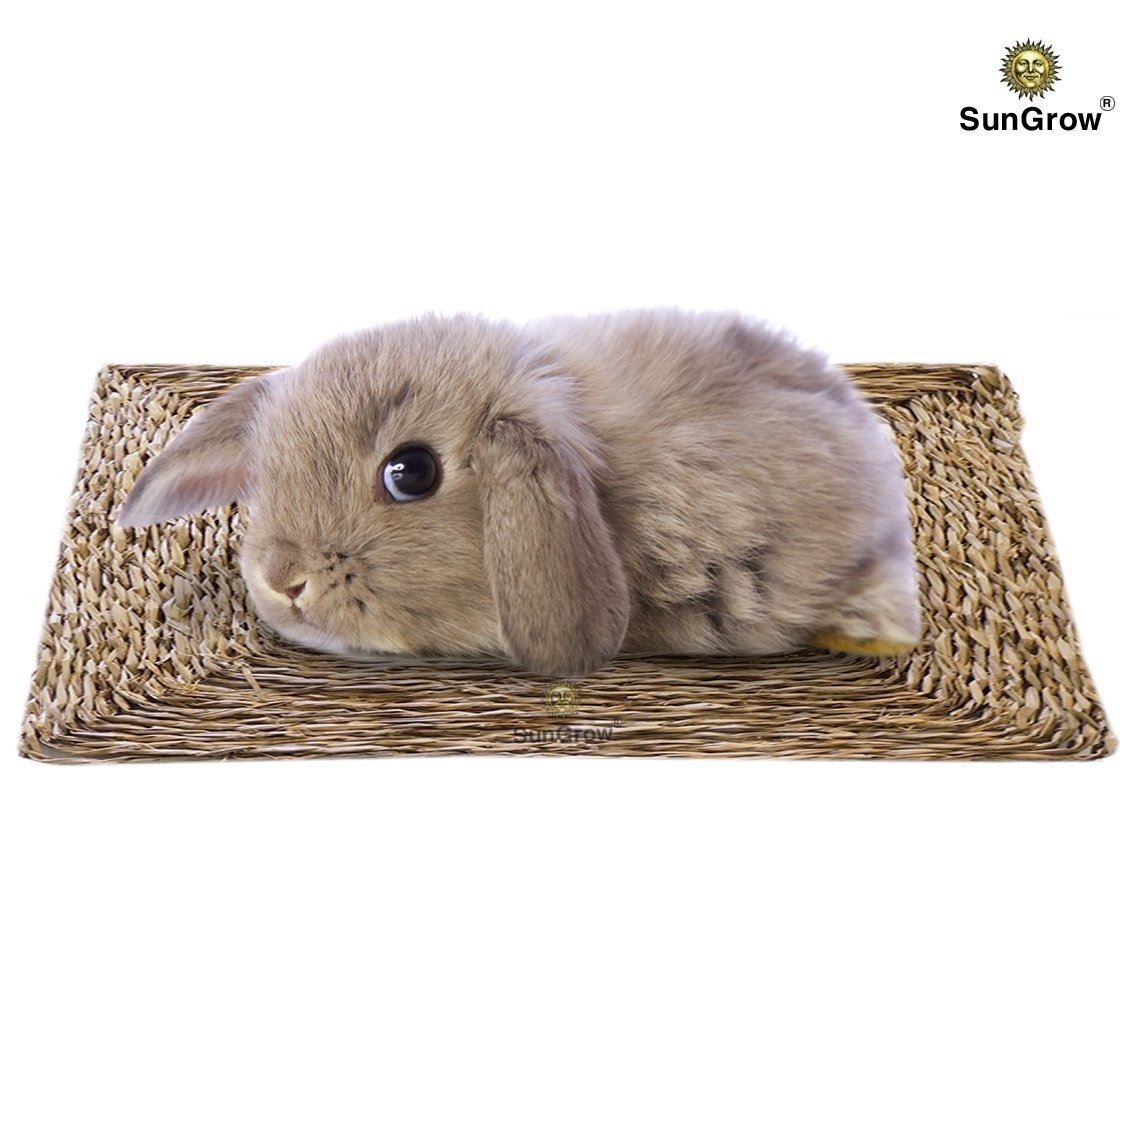 SunGrow Natural Seagrass Mat - Safe & Edible for, Hamsters, Rabbits, Parrot: Water Resistant Bed & Non-Toxic Toy